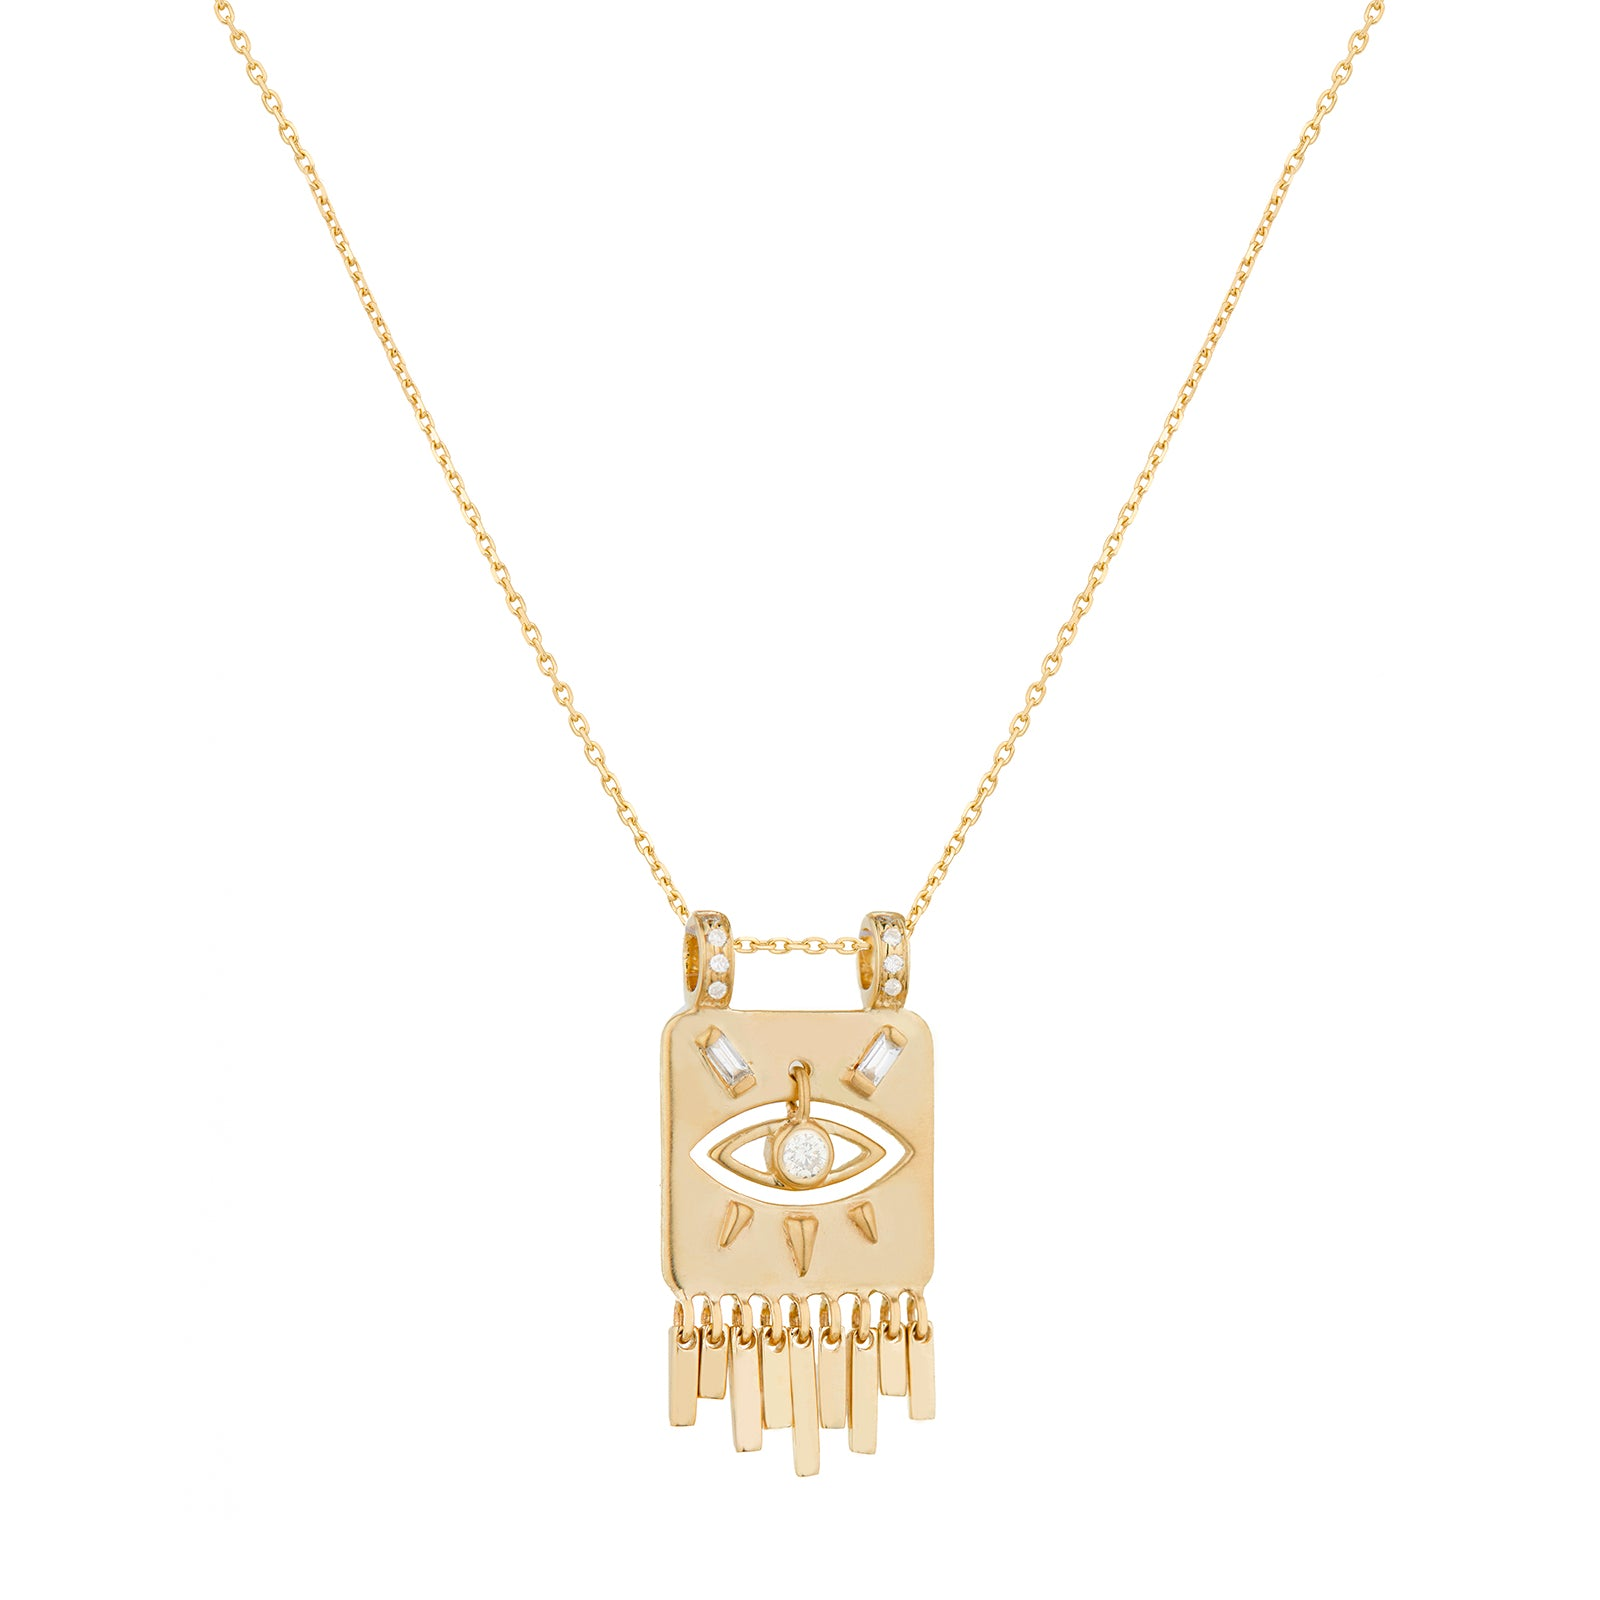 Celine Daoust Small Gold Plate & Dangling Eye Necklace - Necklaces - Broken English Jewelry